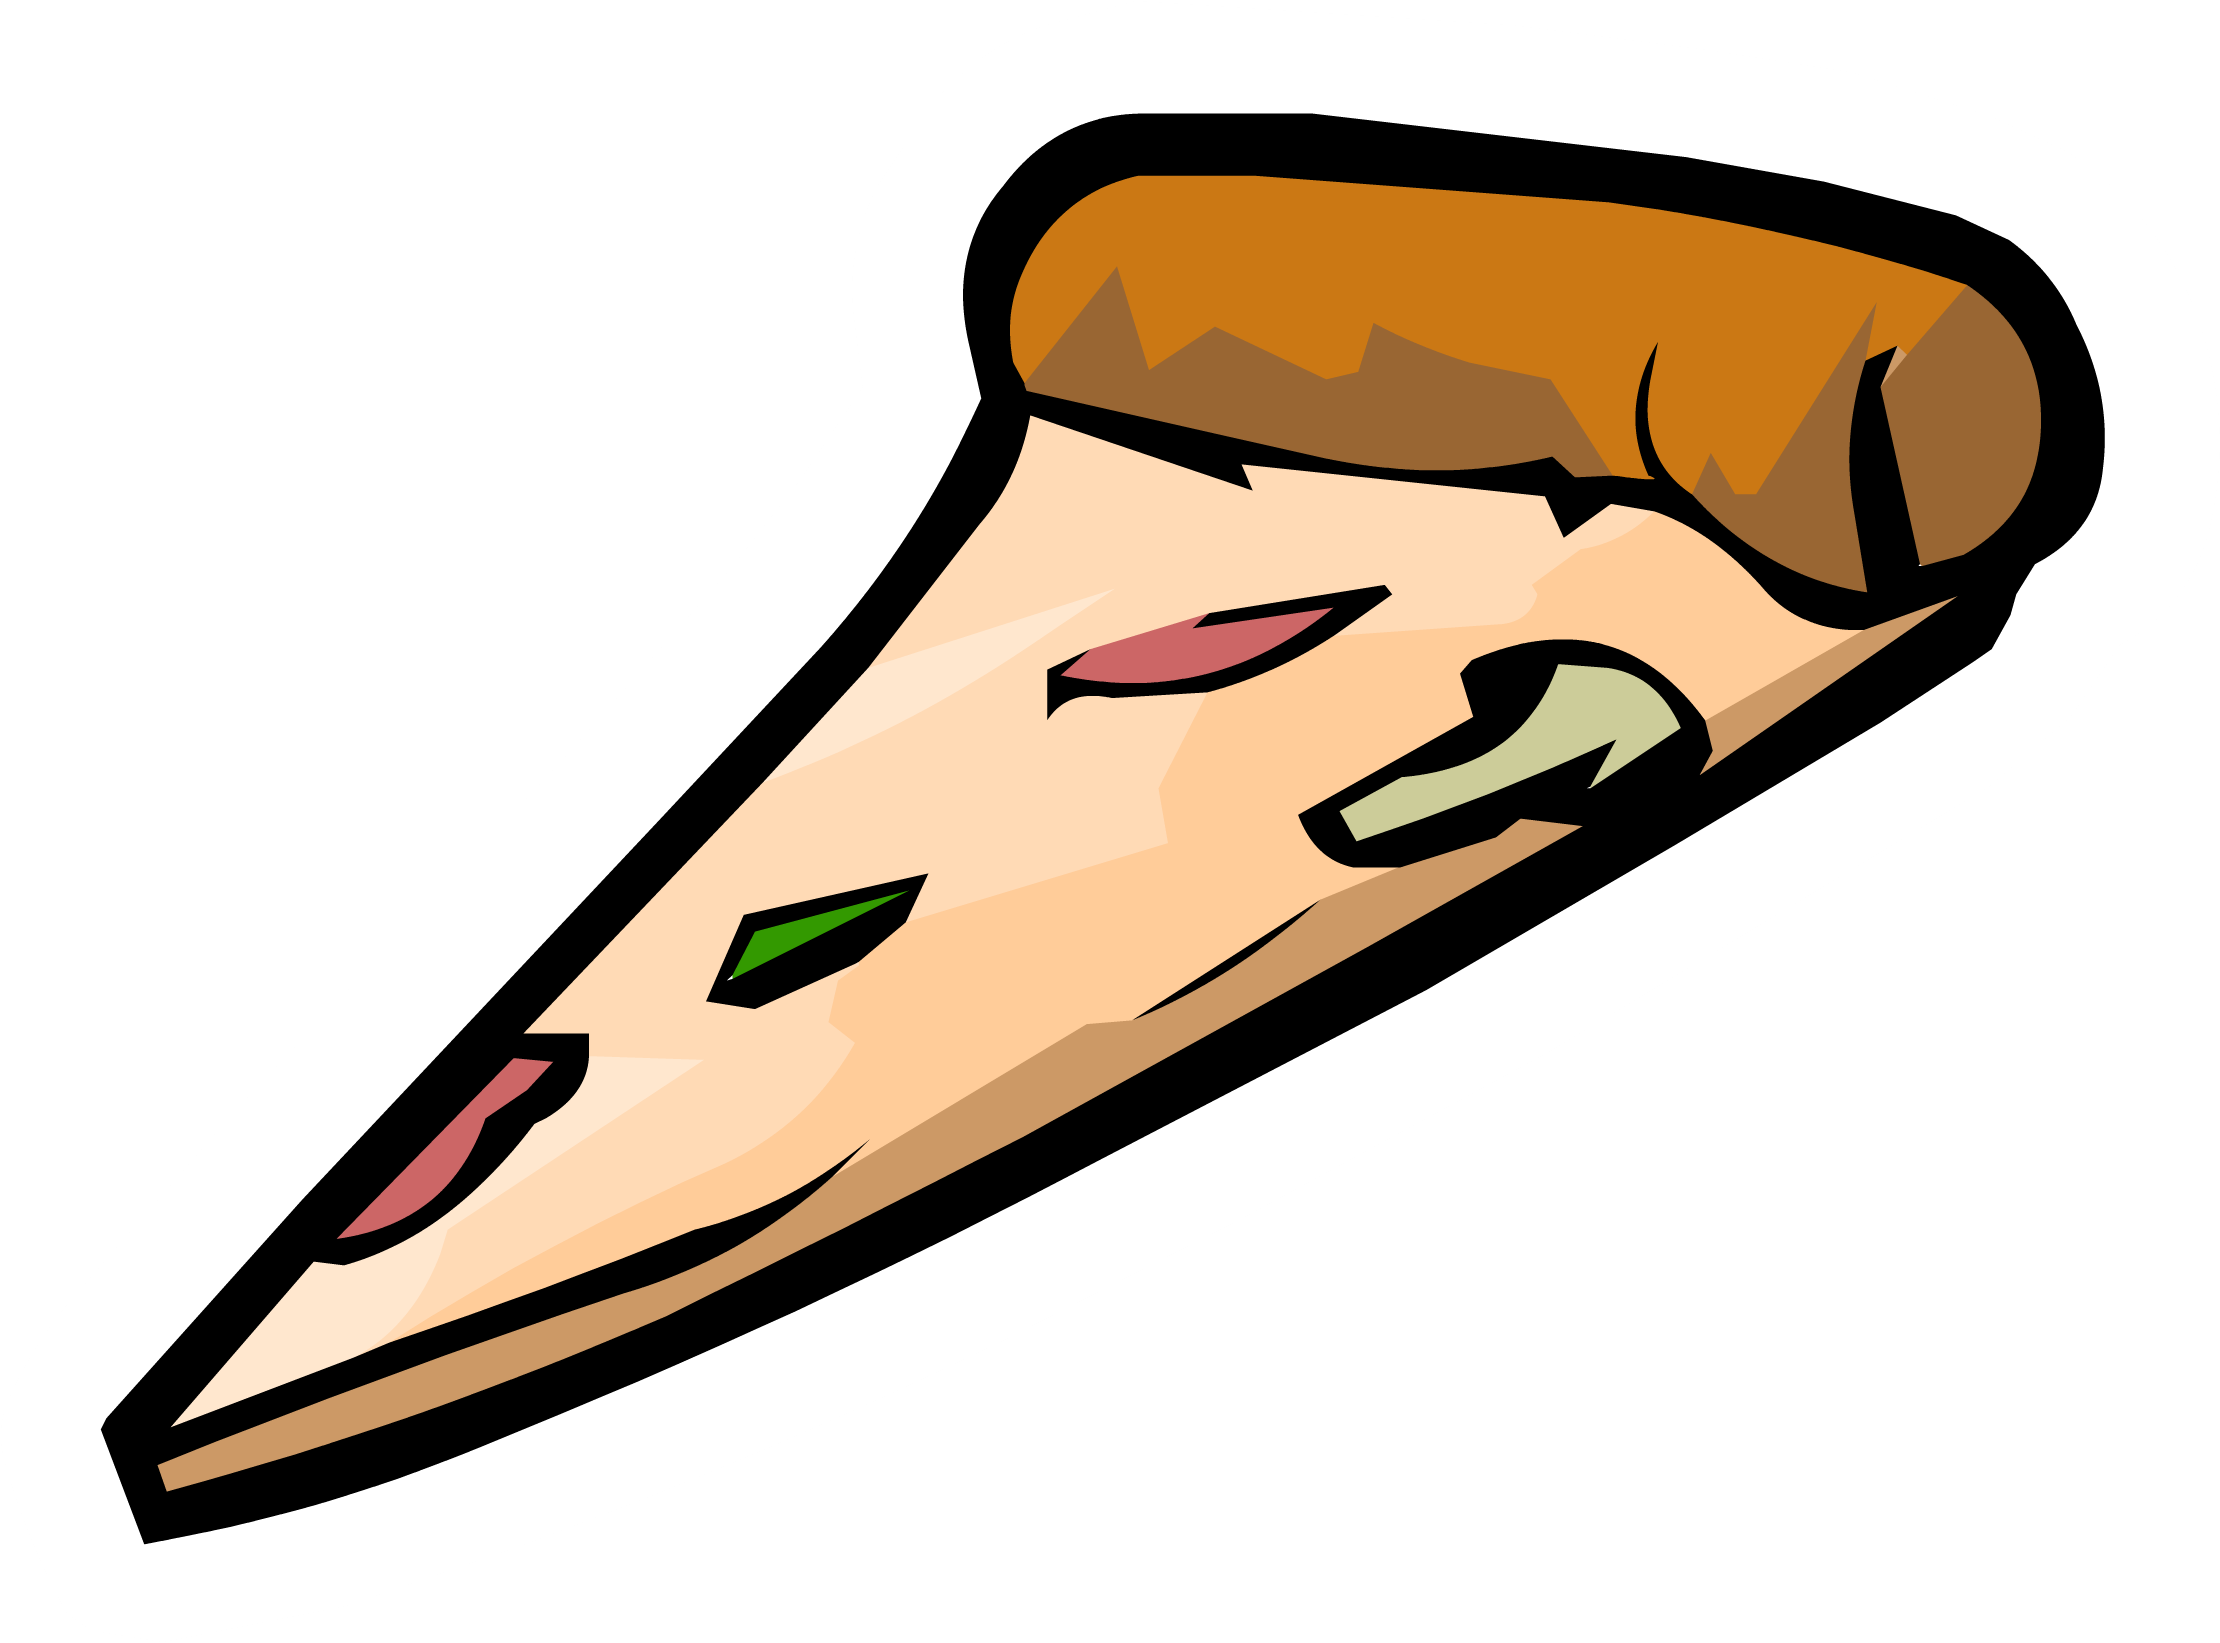 Image slice pin png. Club clipart pizza